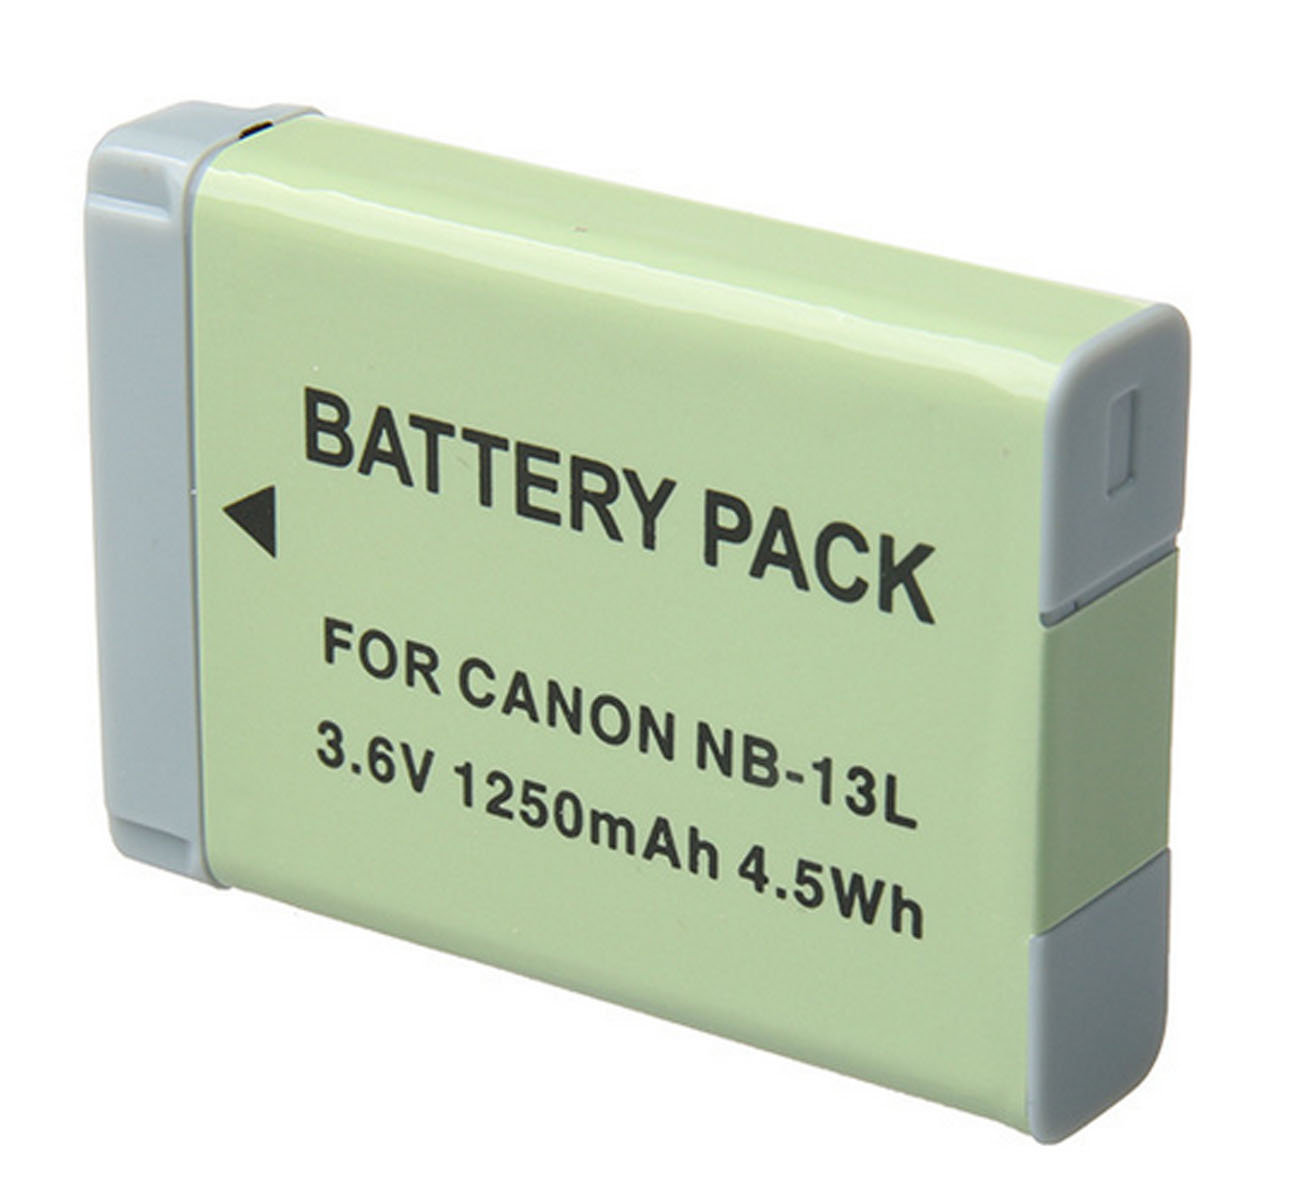 NB-13L Battery Pack For Canon PowerShot G1 X Mark III, G5X,G5 X, G7X, G7 X MarkII, G9X, G9 X Mark II Digital Camera